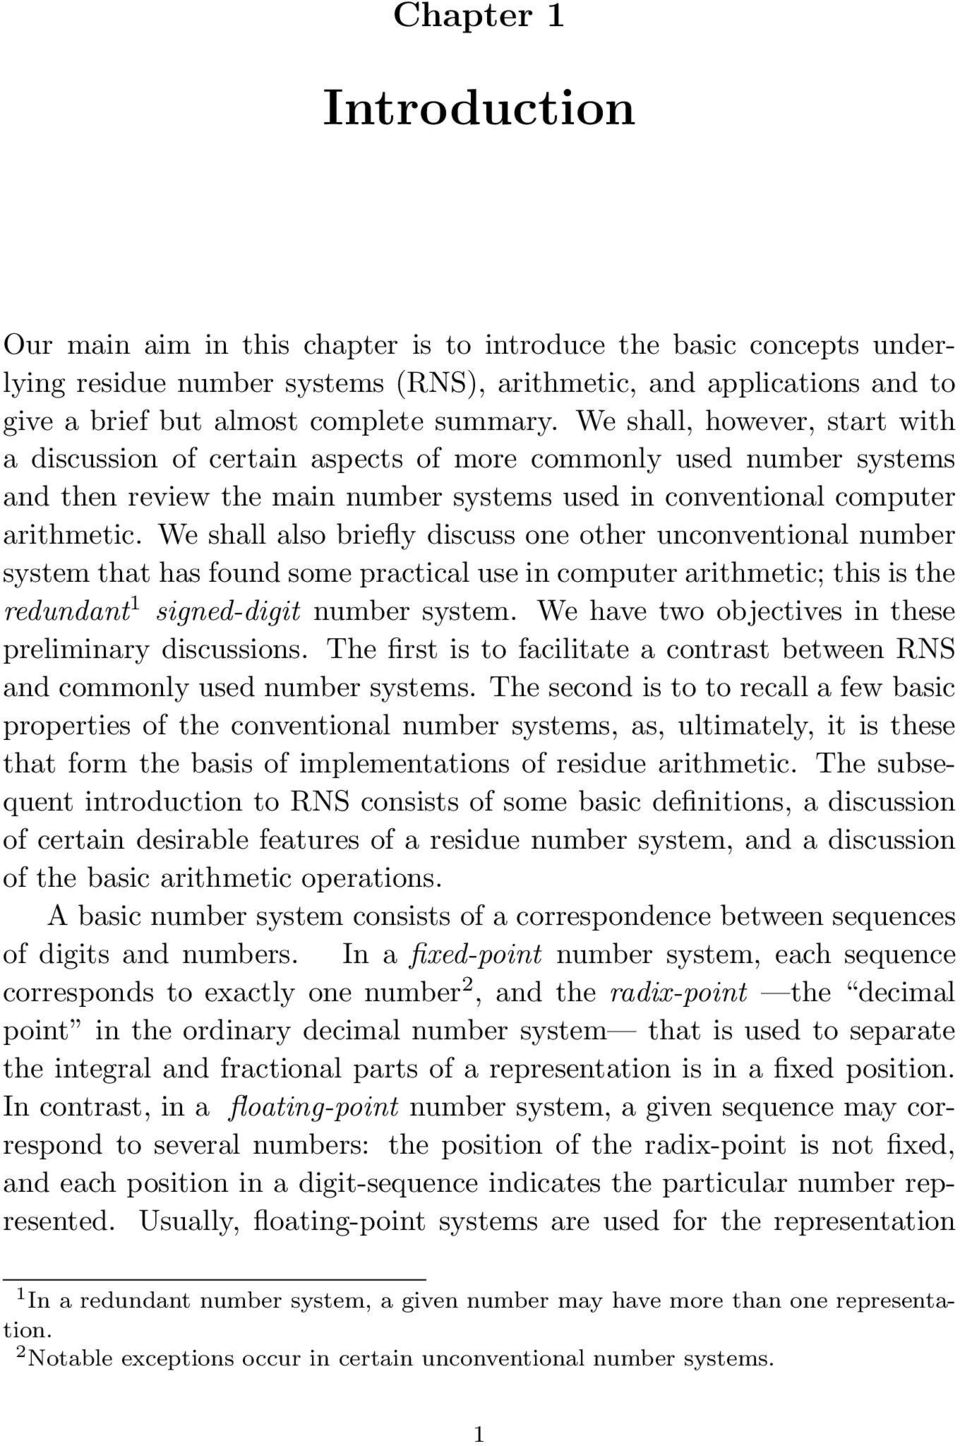 We shall also briefly discuss one other unconventional number system that has found some practical use in computer arithmetic; this is the redundant 1 signed-digit number system.